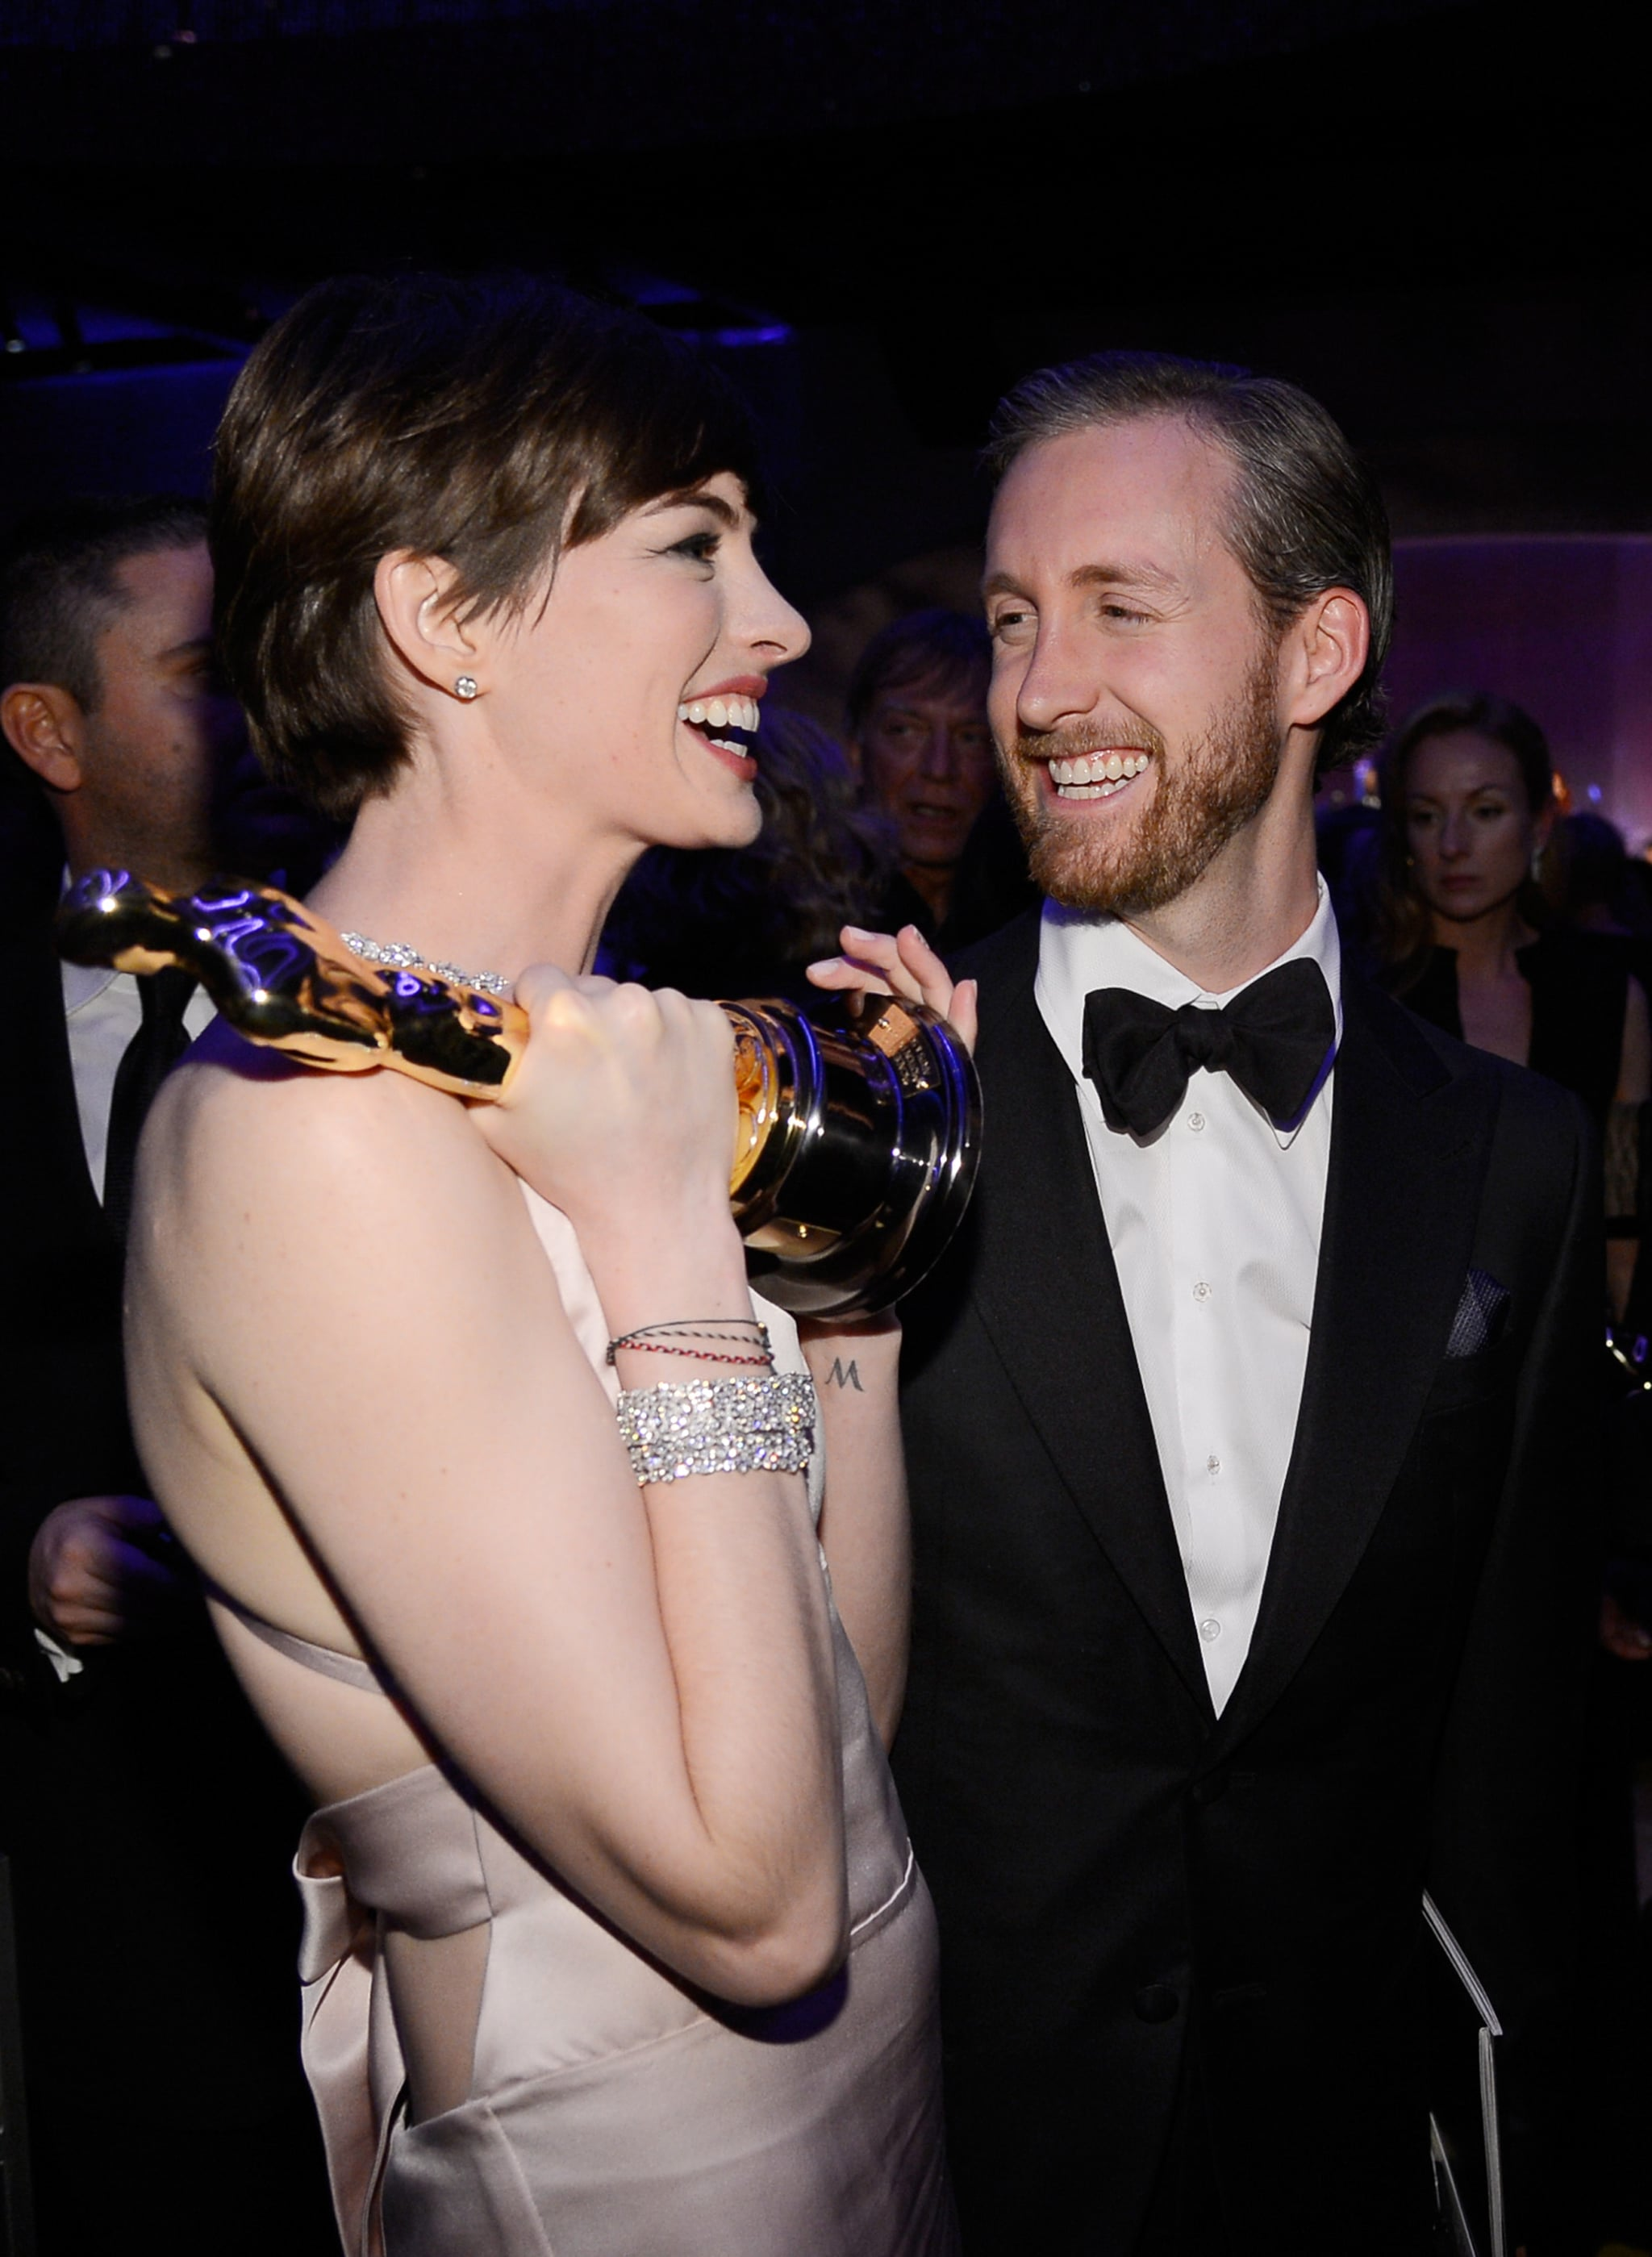 Anne Hathaway and her husband, Adam Shulman, had a laugh at the Governors Ball.